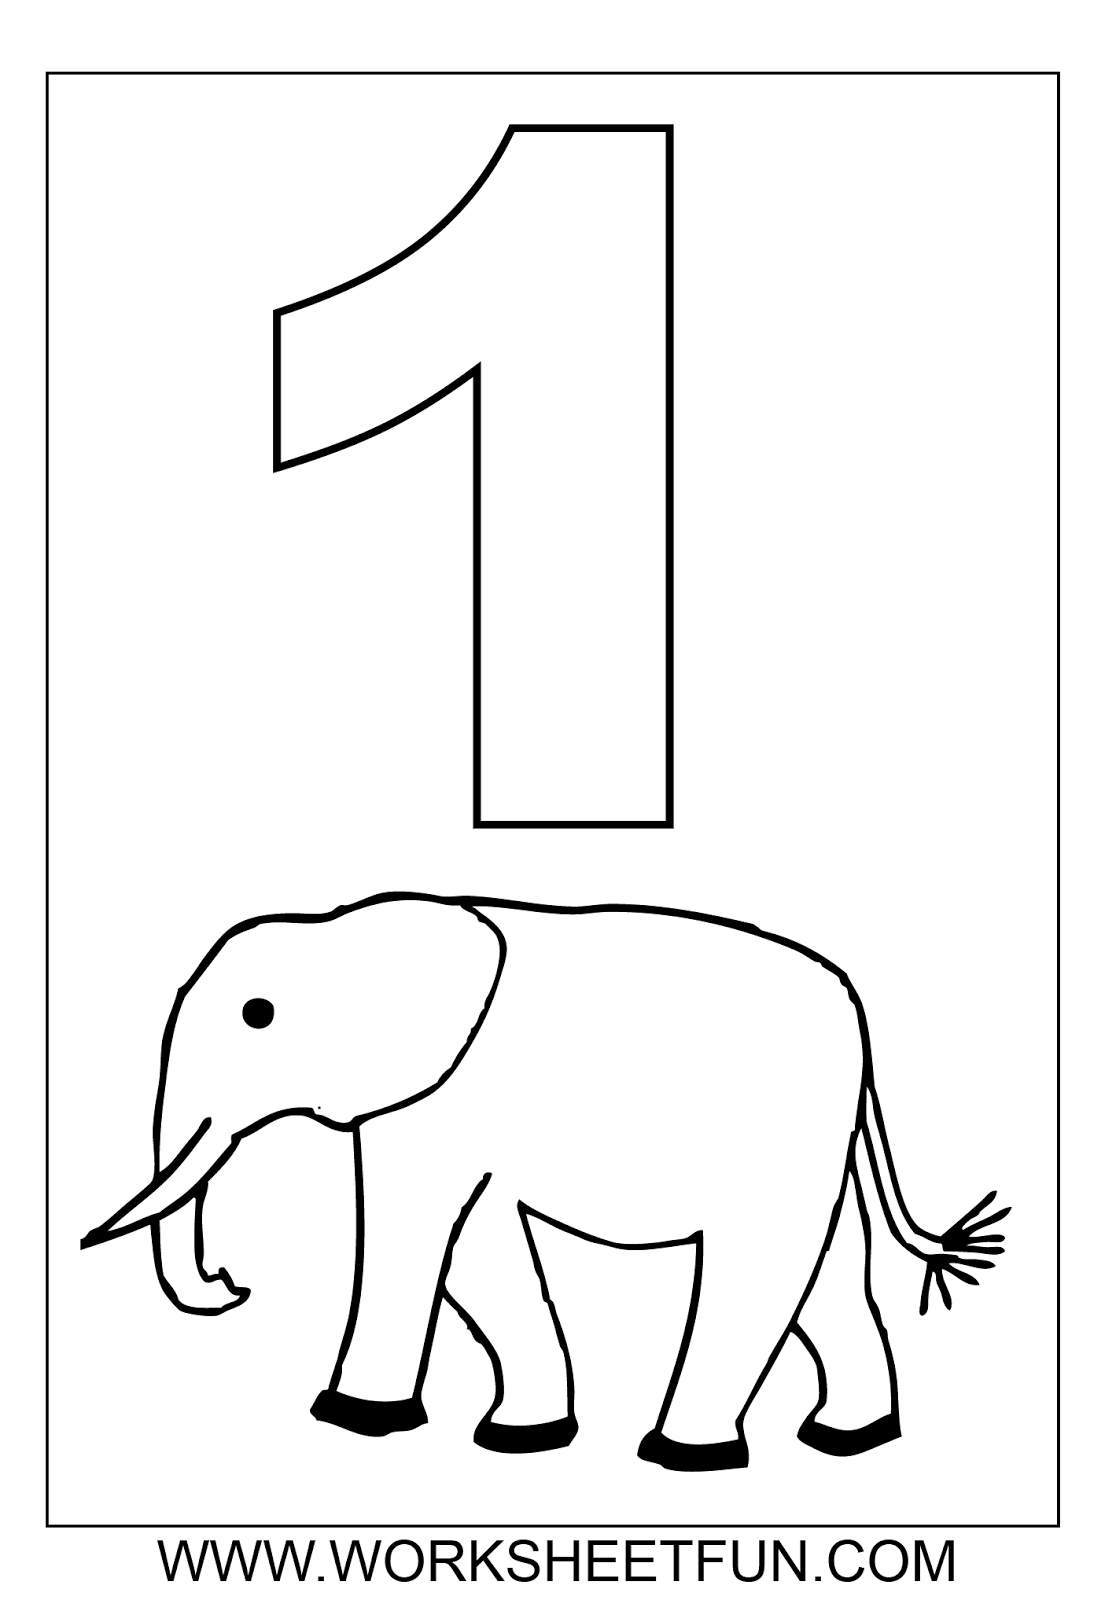 8 Best Images Of Numbers 2 Coloring Printables 1 10